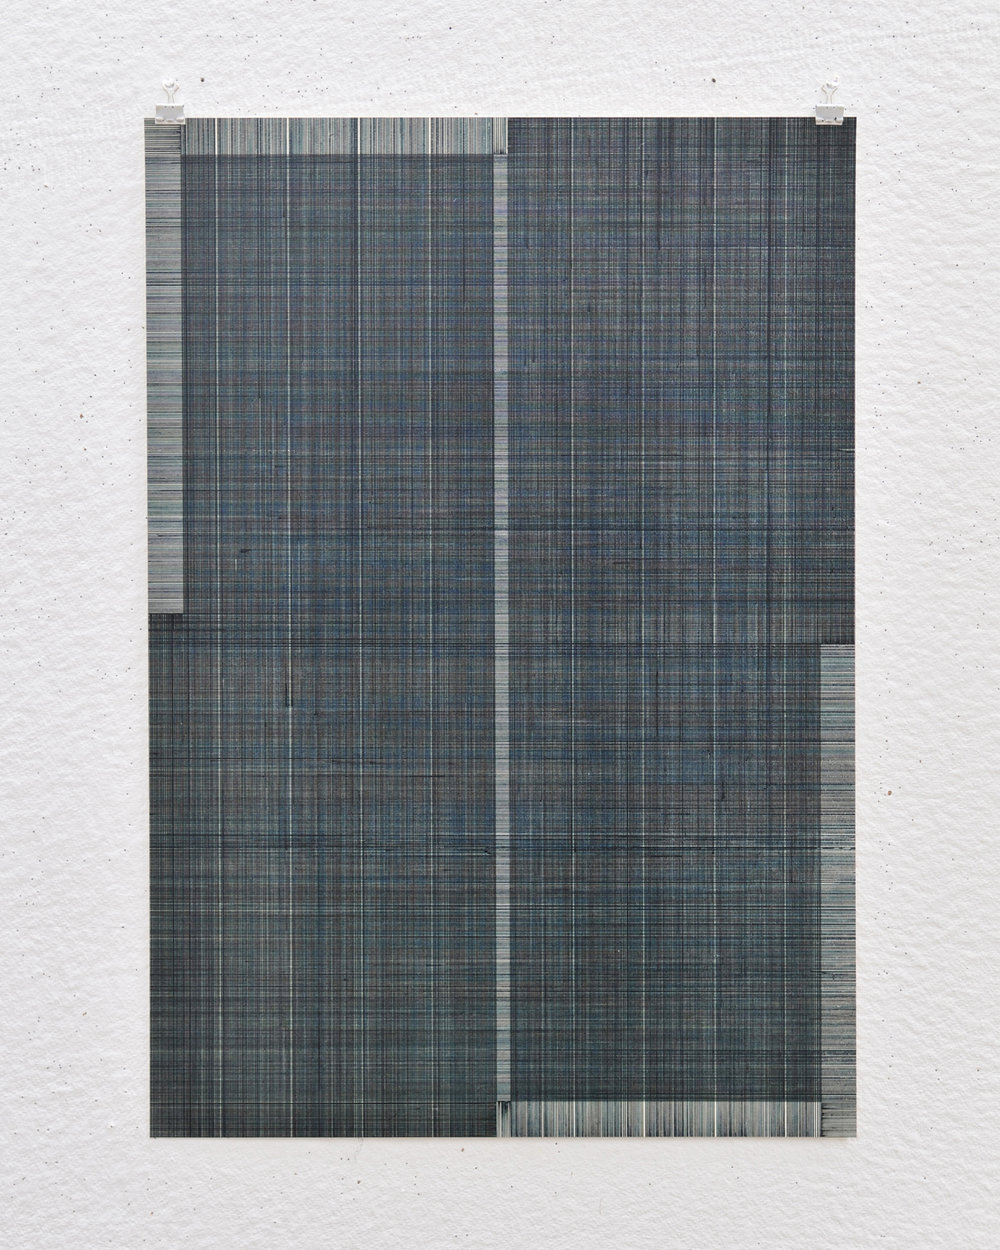 'Drawing (blue/grey) A02', acrylic and ink on paper, 72 x 50 cm